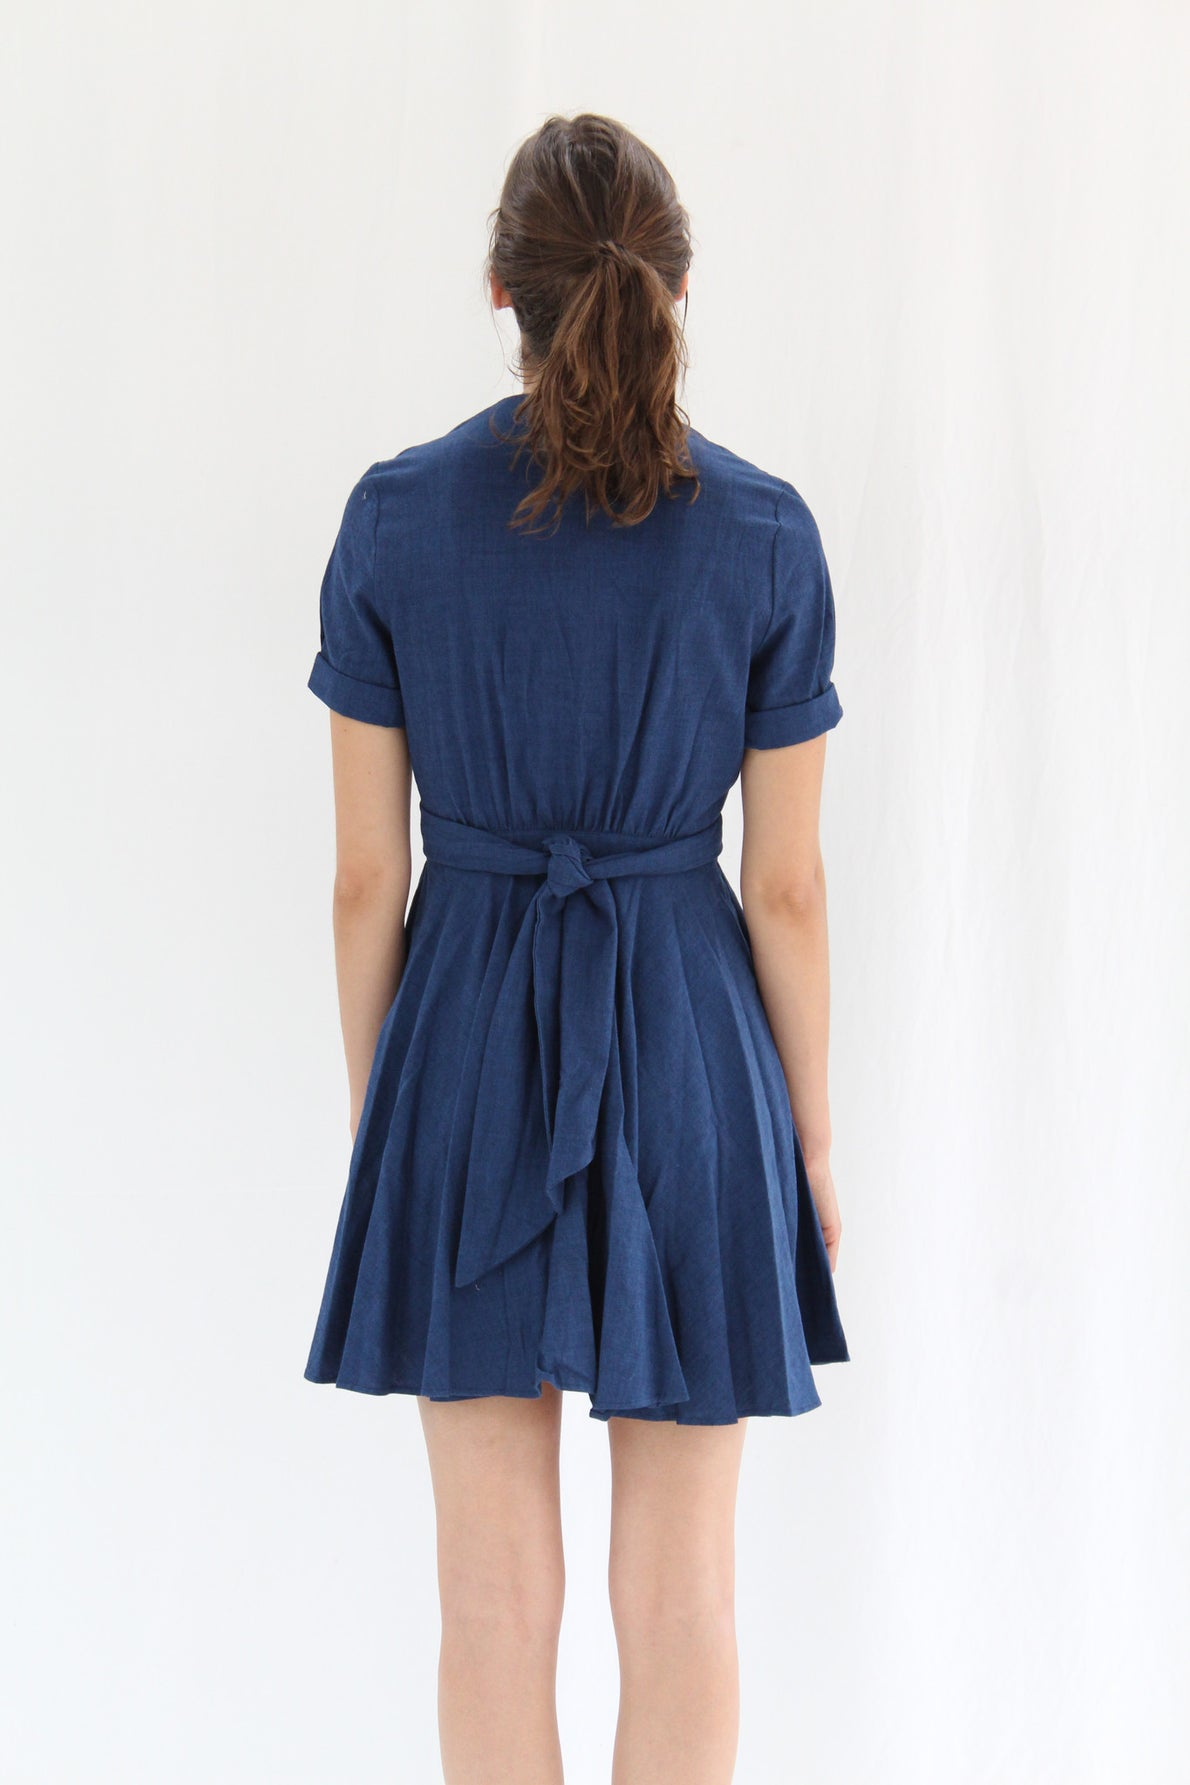 Heinui Isadora Dress Indigo Chambray